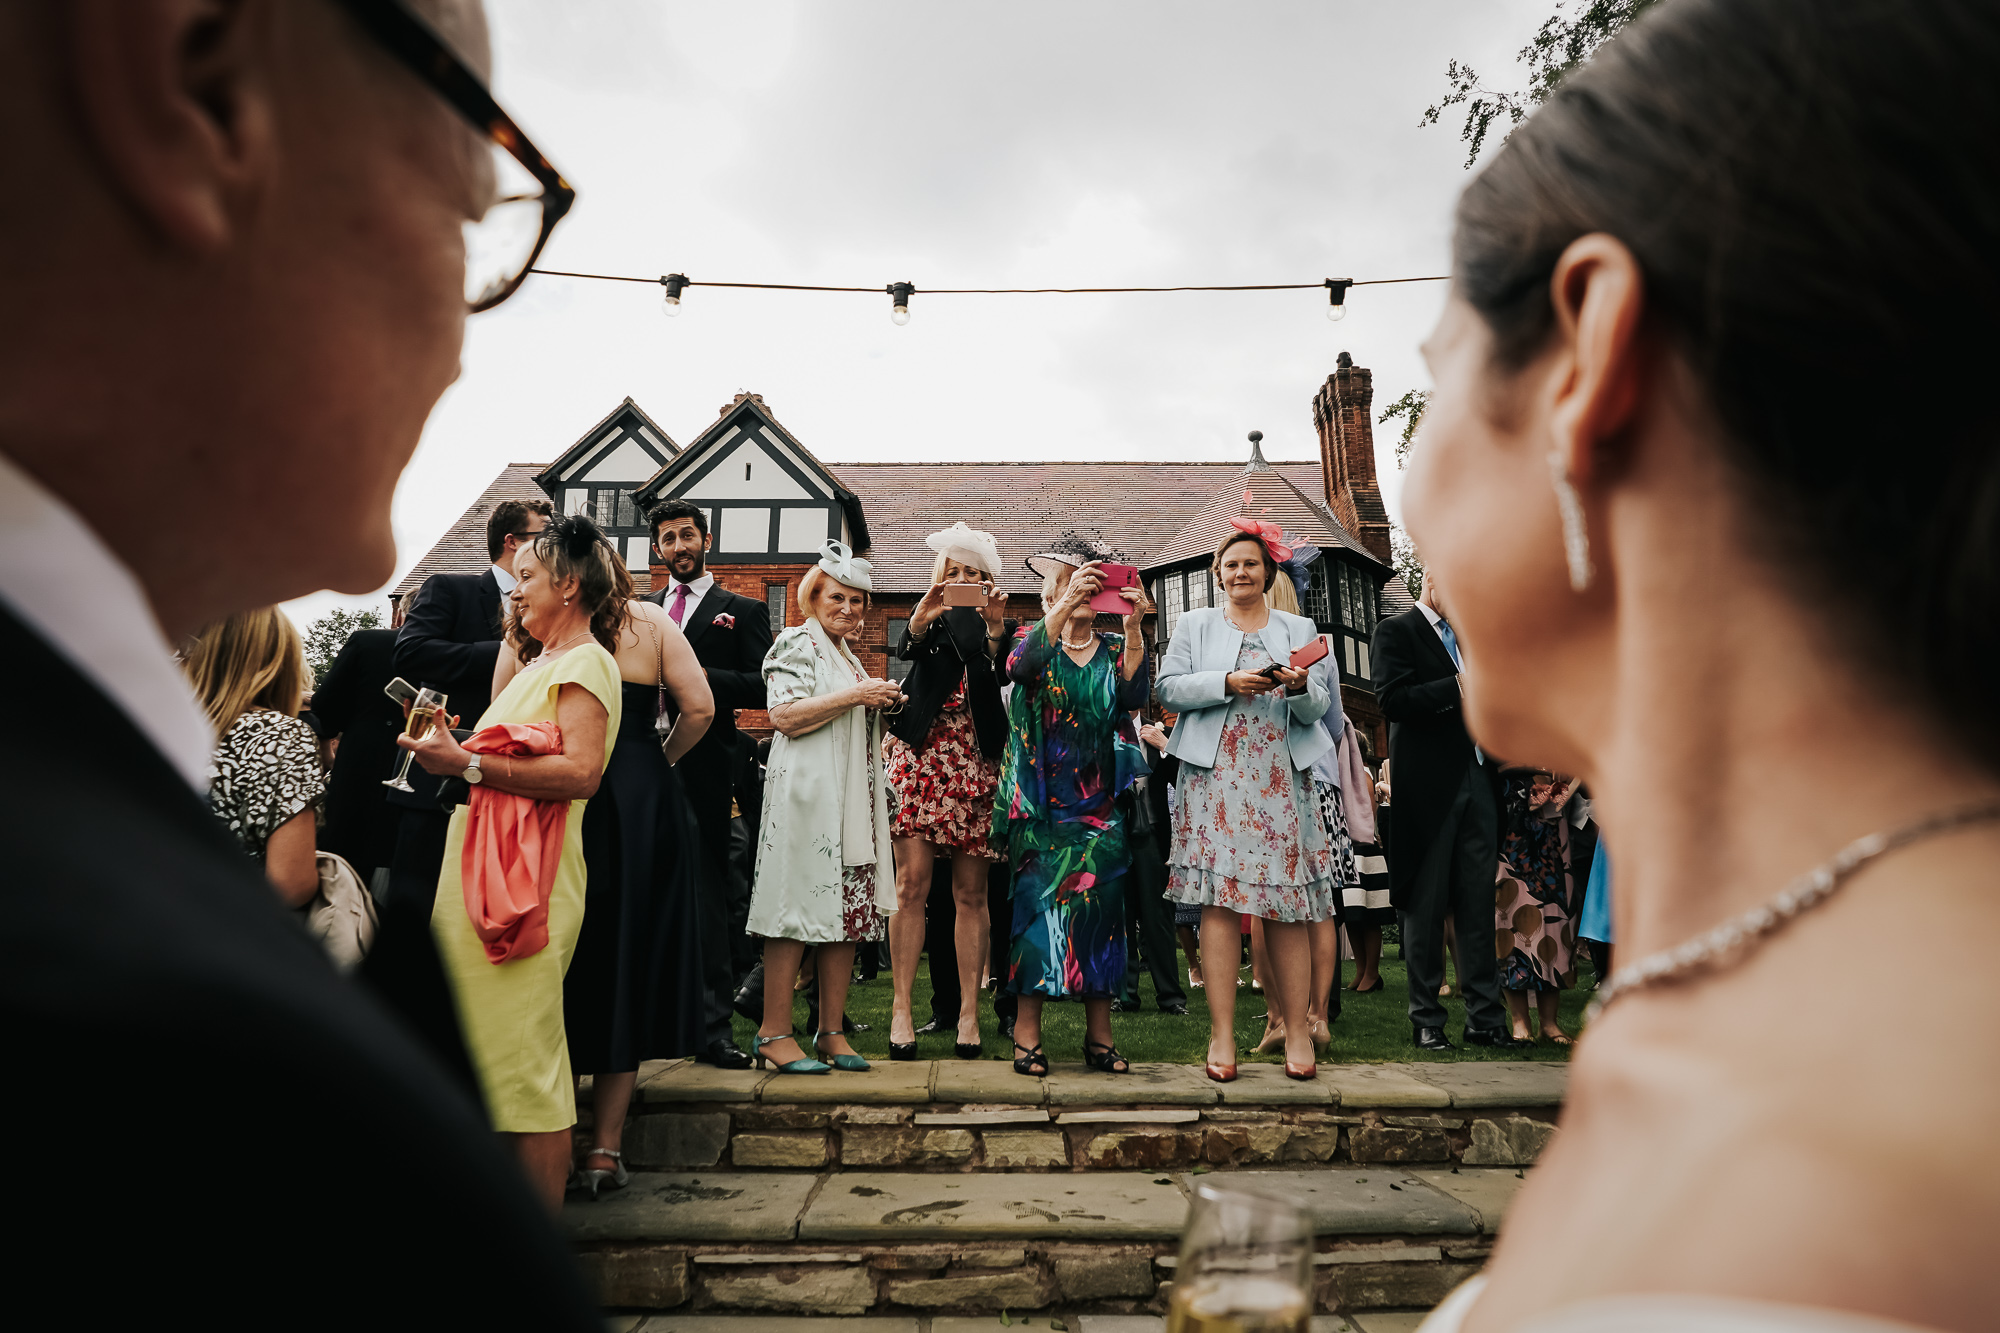 Cheshire wedding at home wedding photography (34 of 49).jpg